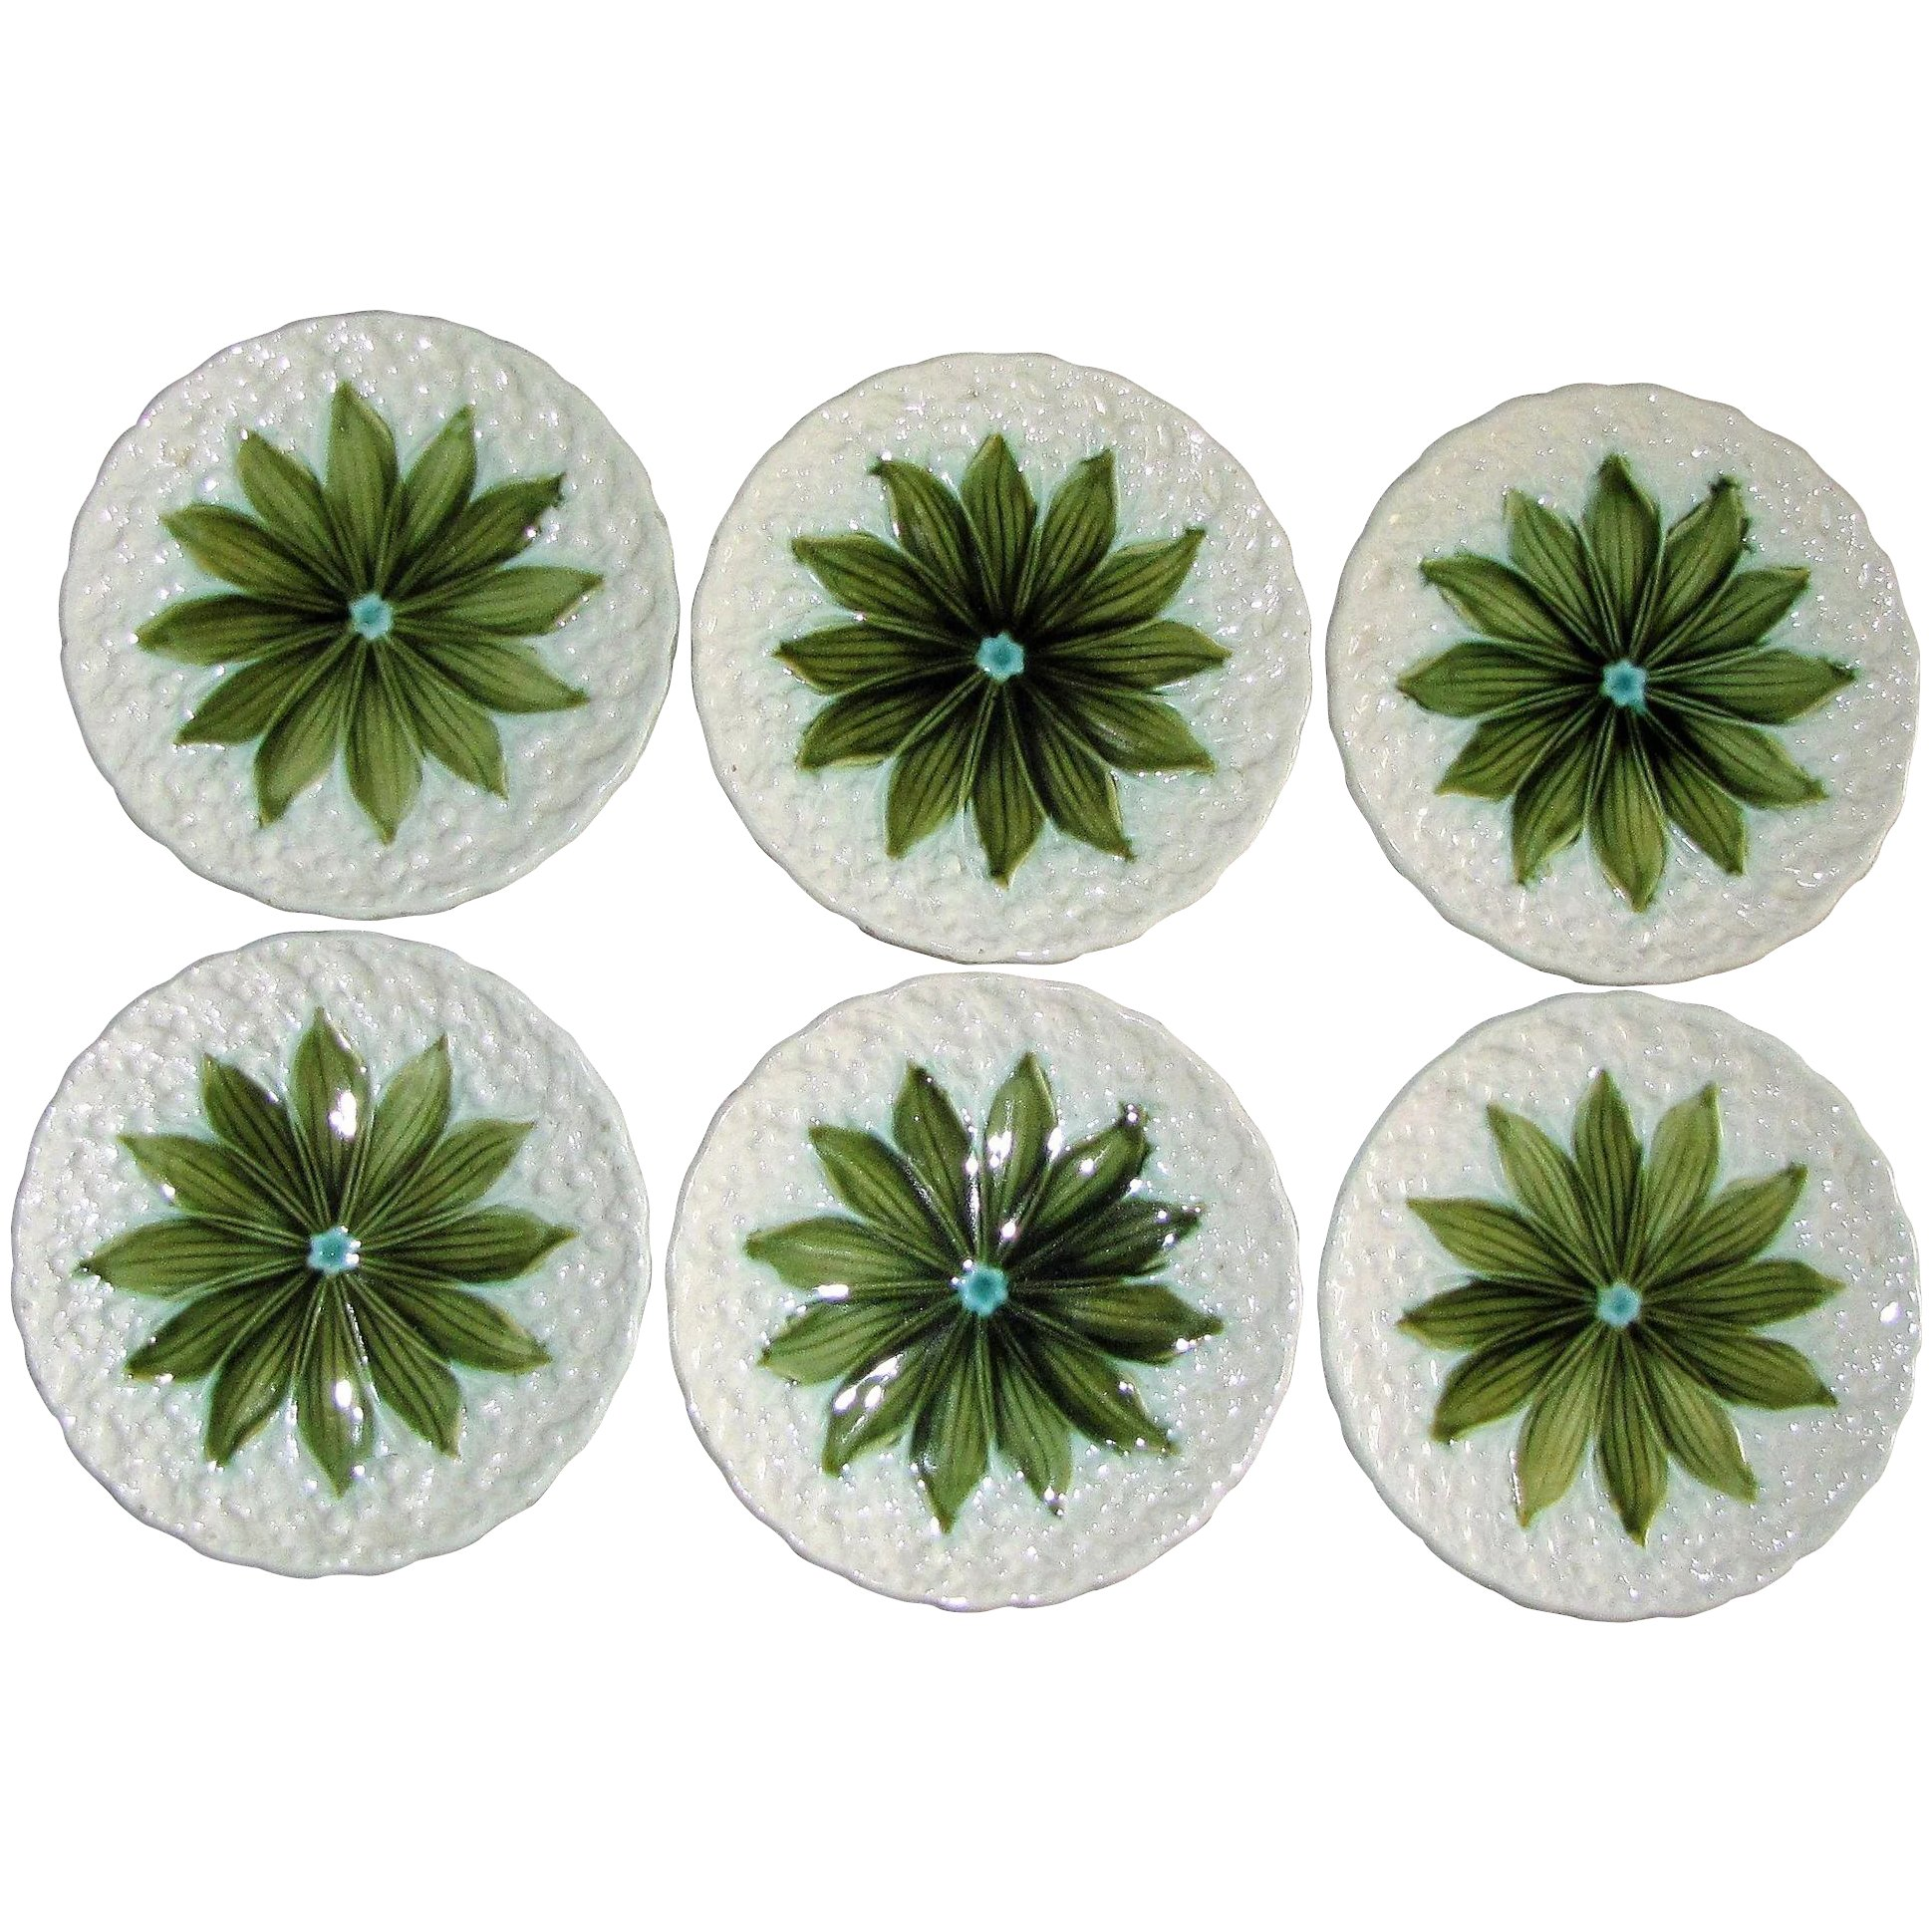 Spring Decor SMF Schramberg Pottery with Art Deco Influence Set of 7 German Majolica Lily of the Valley Pink and Green Plates